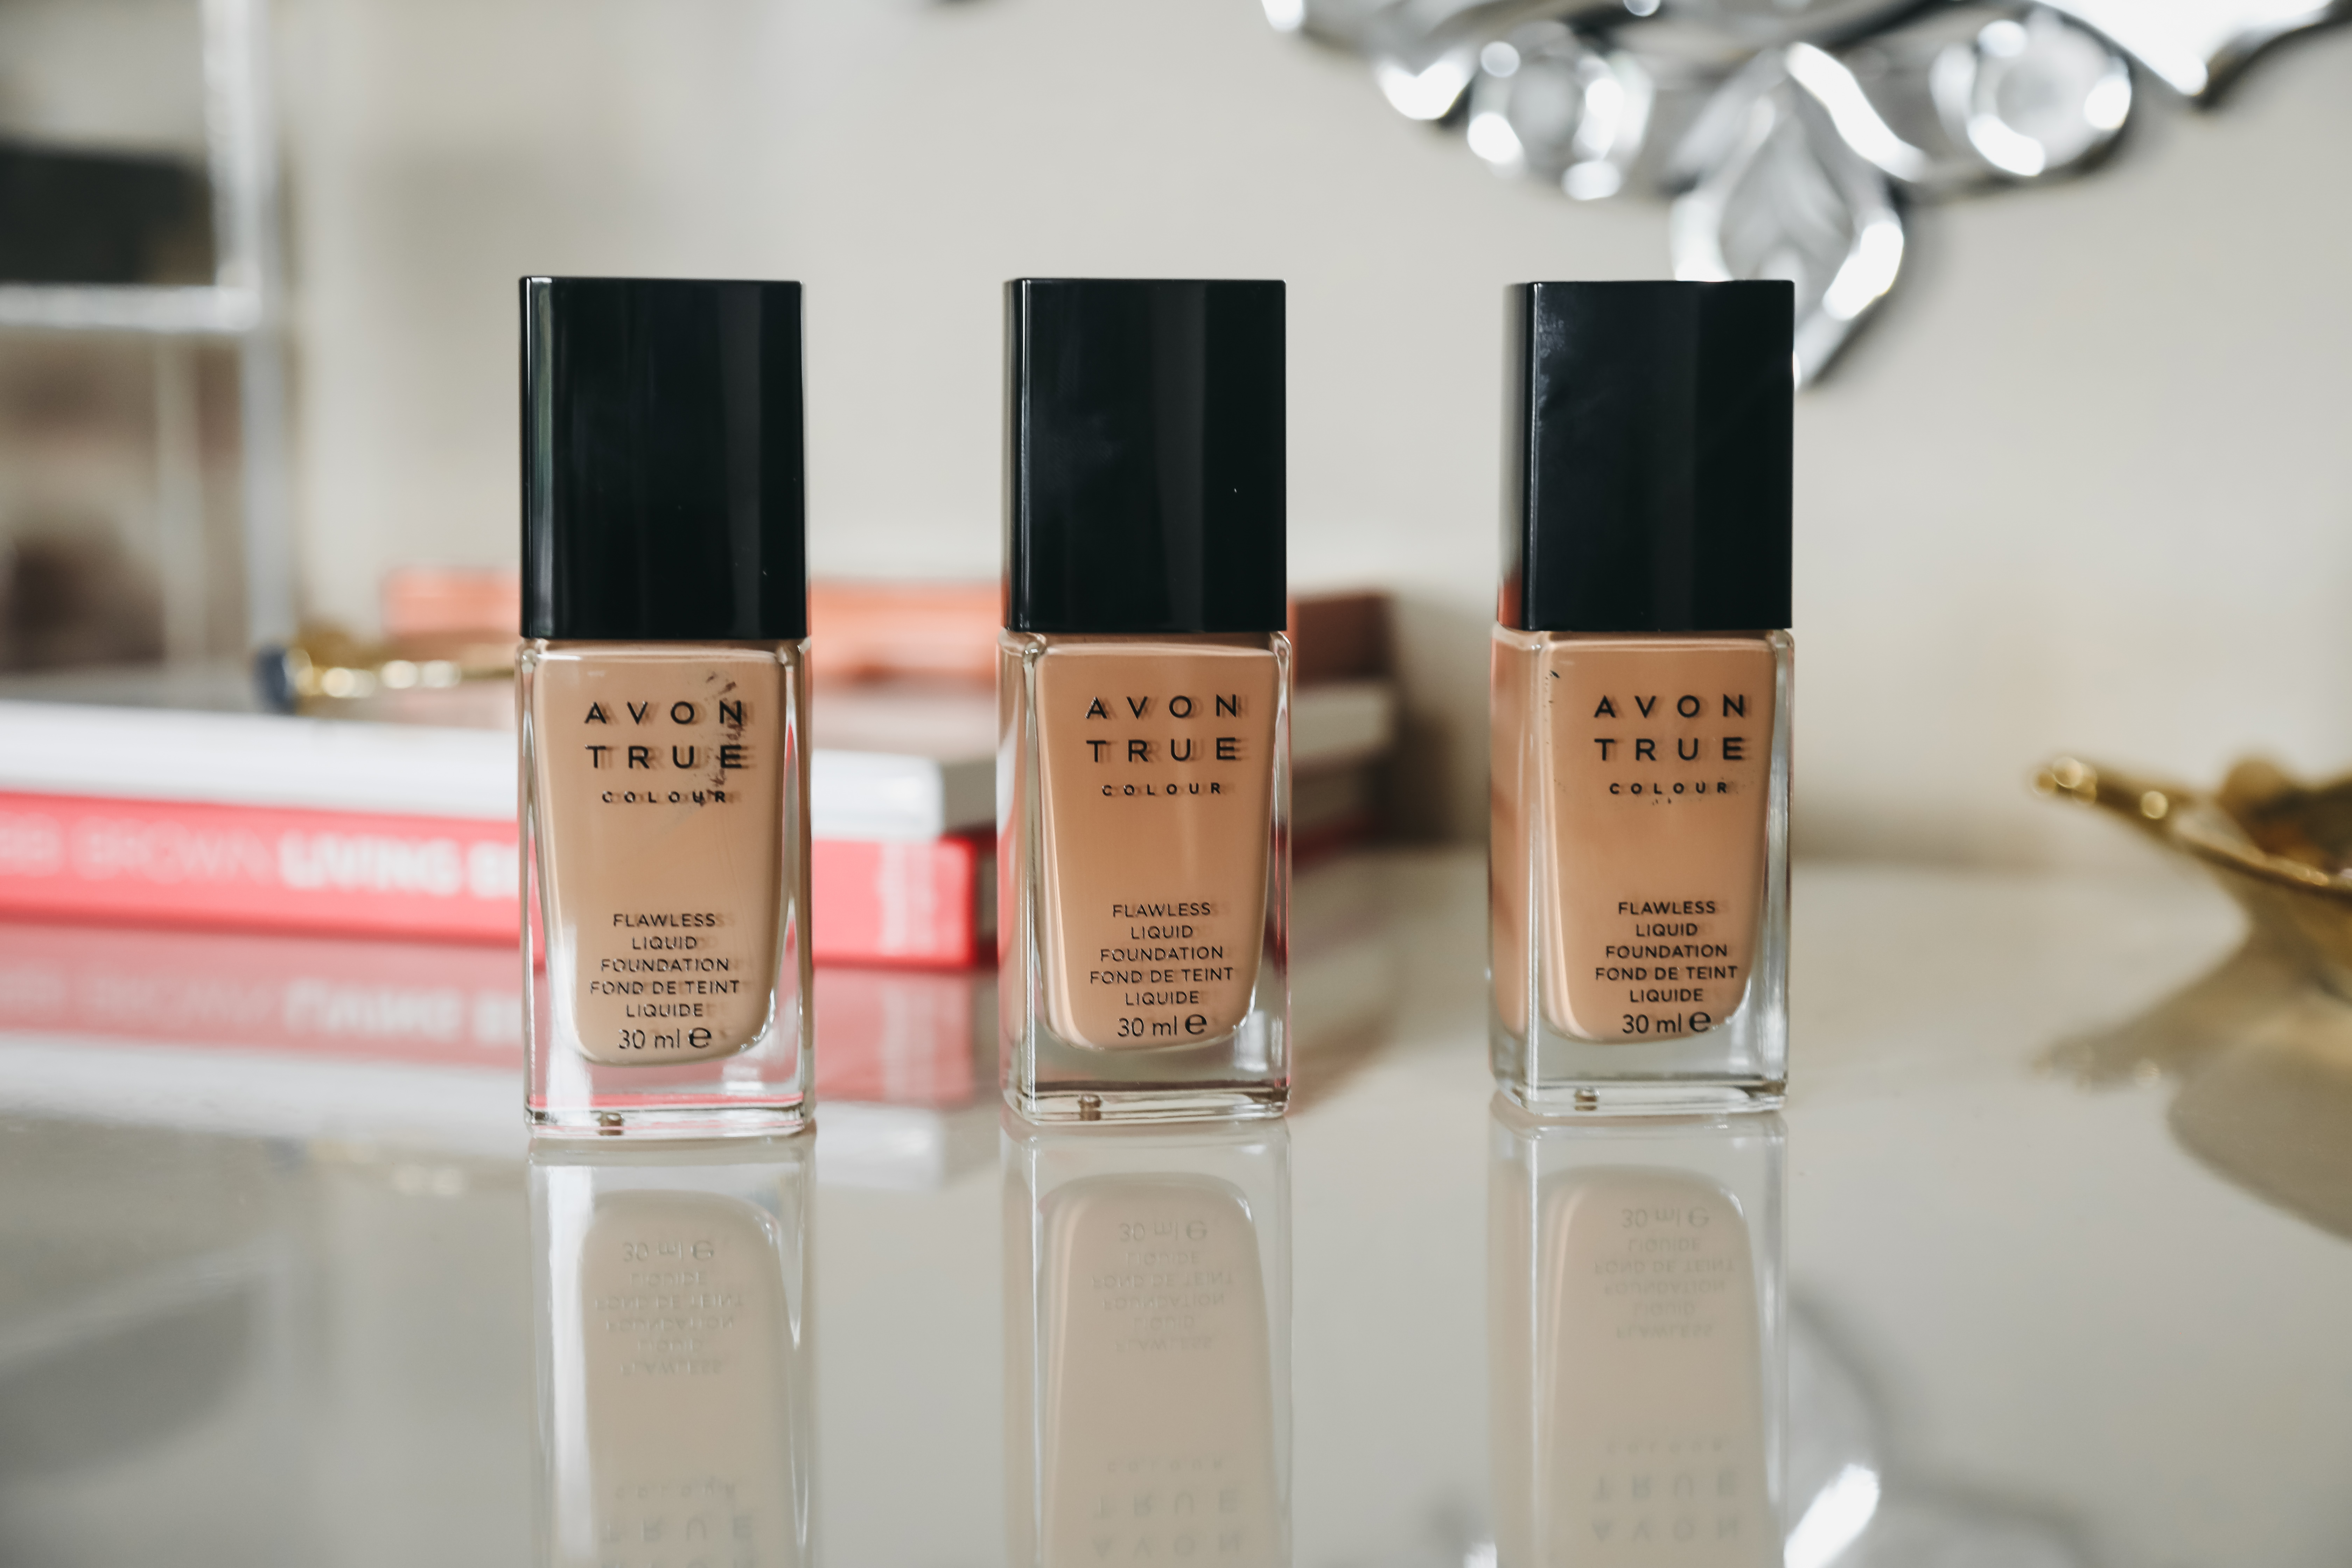 The Avon True Colour Flawless Liquid Foundation Review Shahnaz